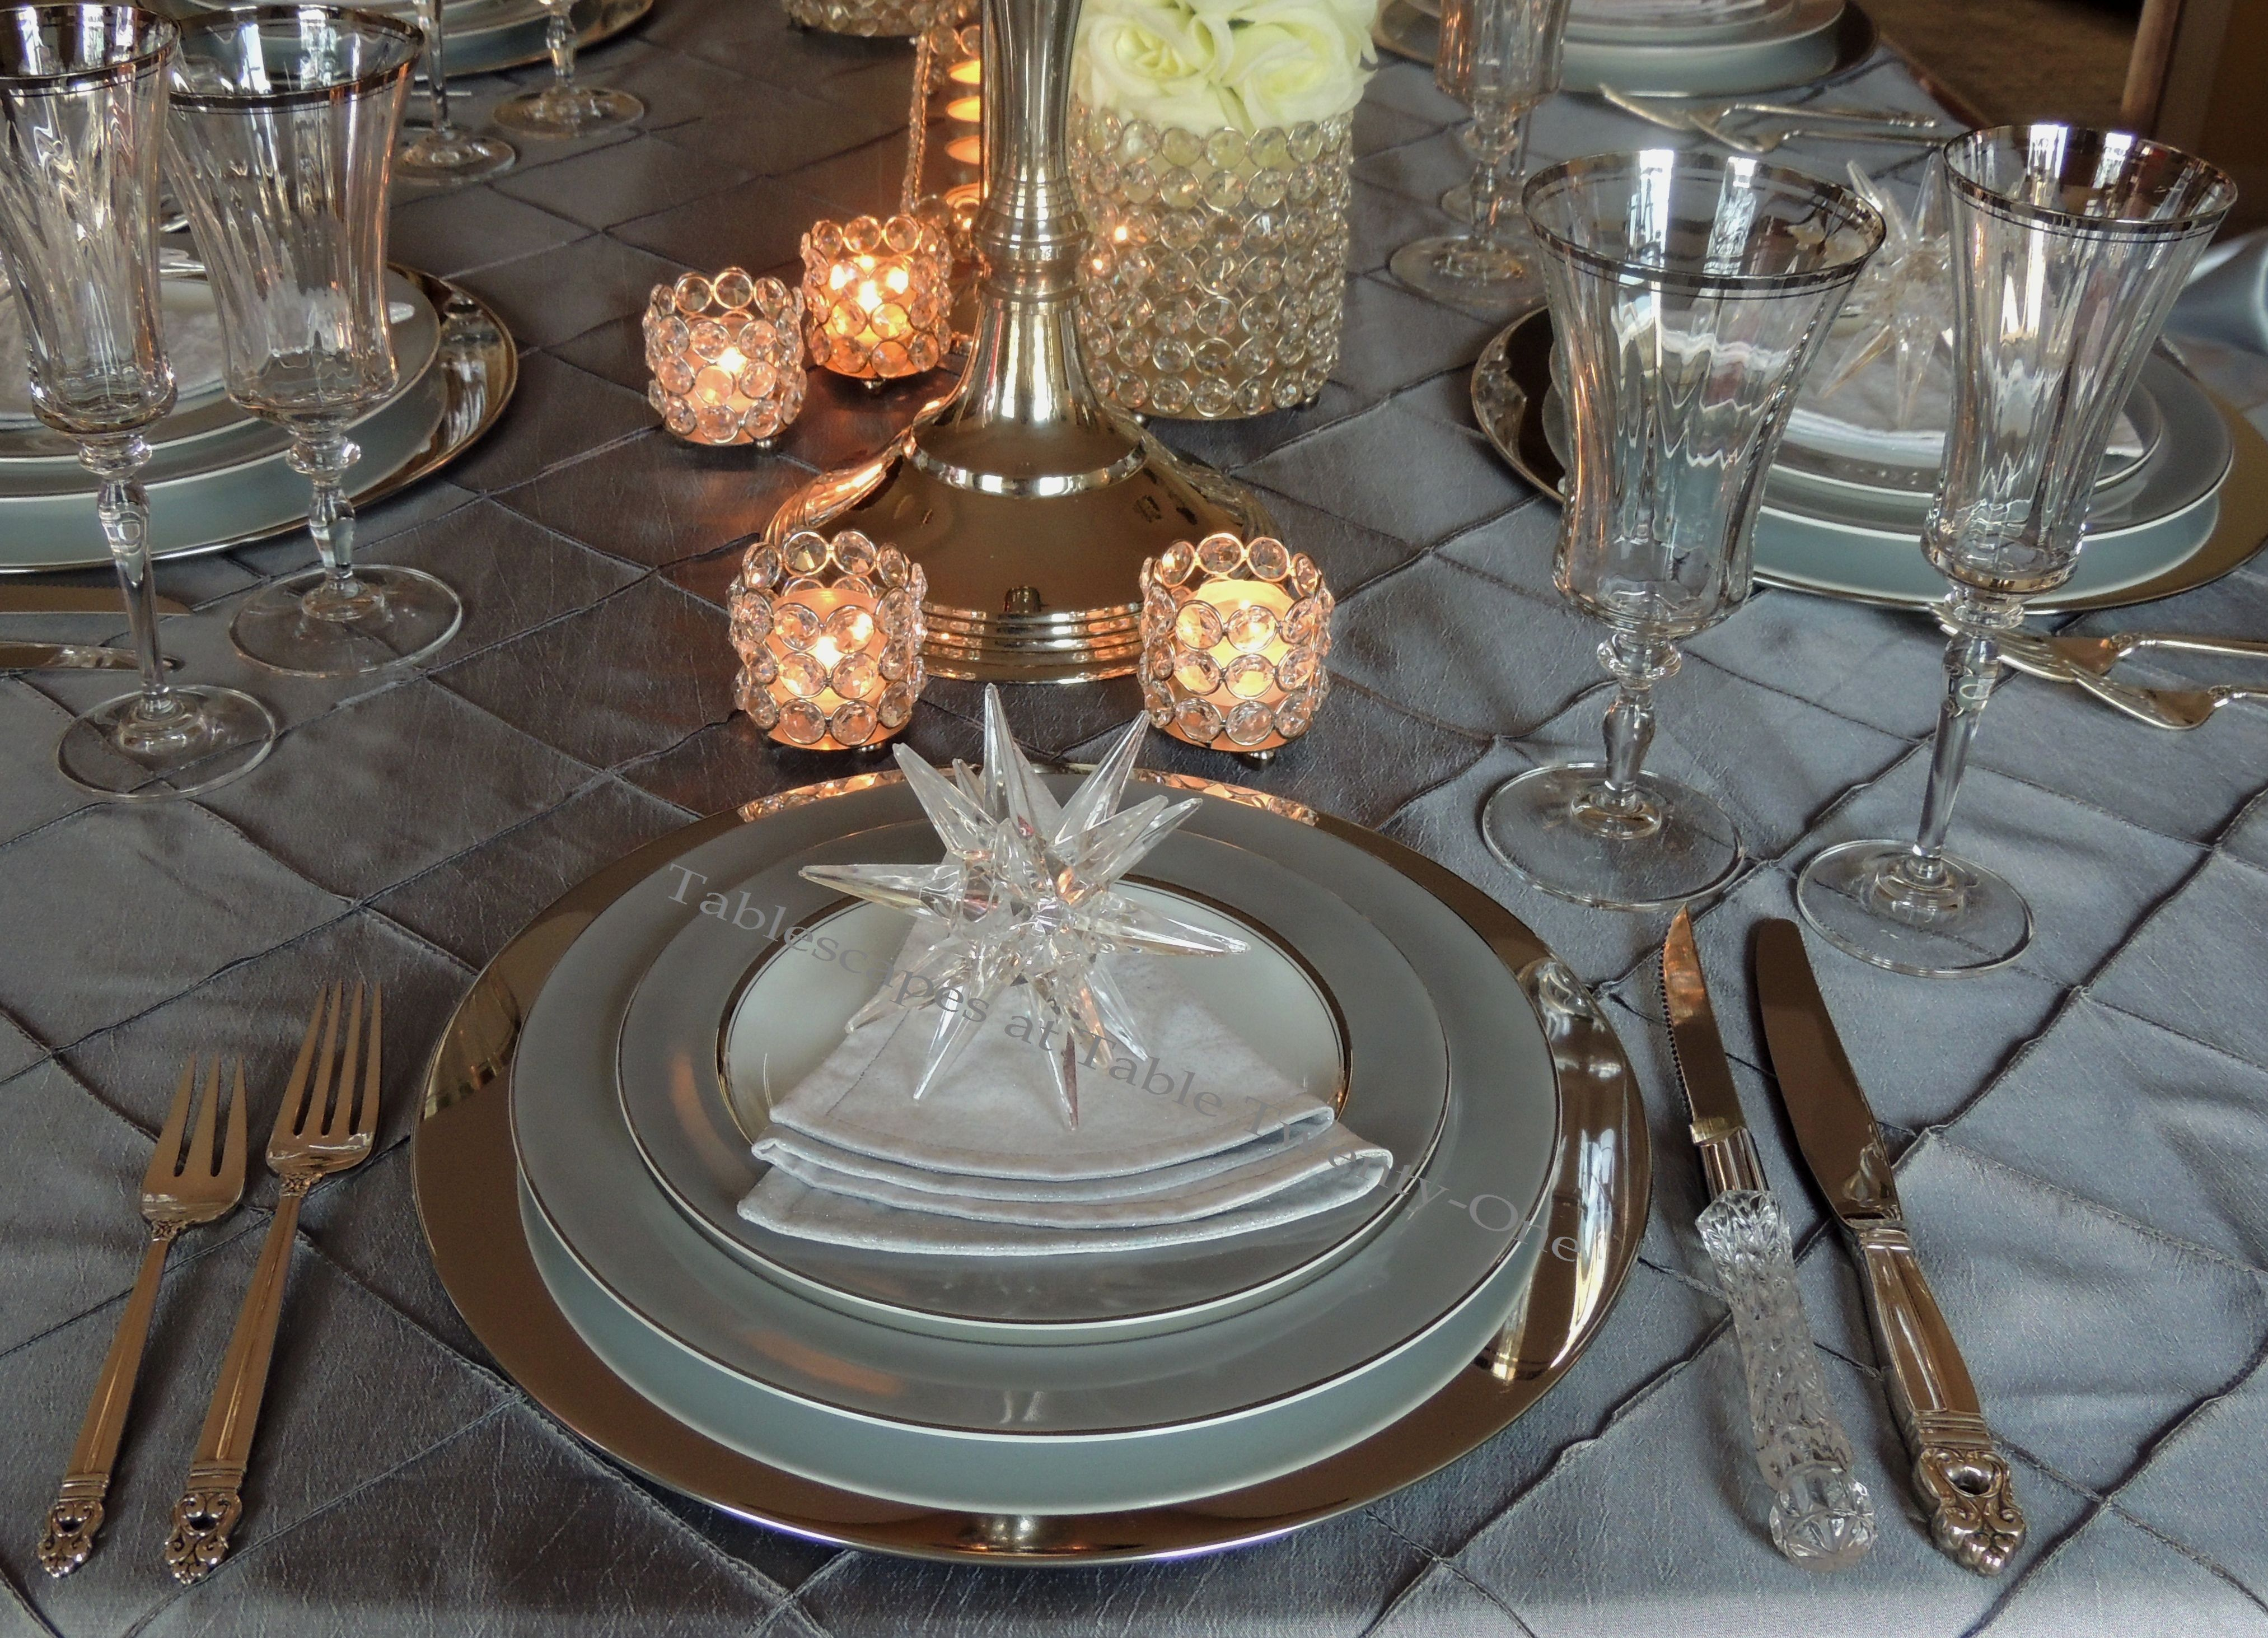 Tablescapes at Table Twenty-One, Platinum New Year's Eve Wedding: Place setting